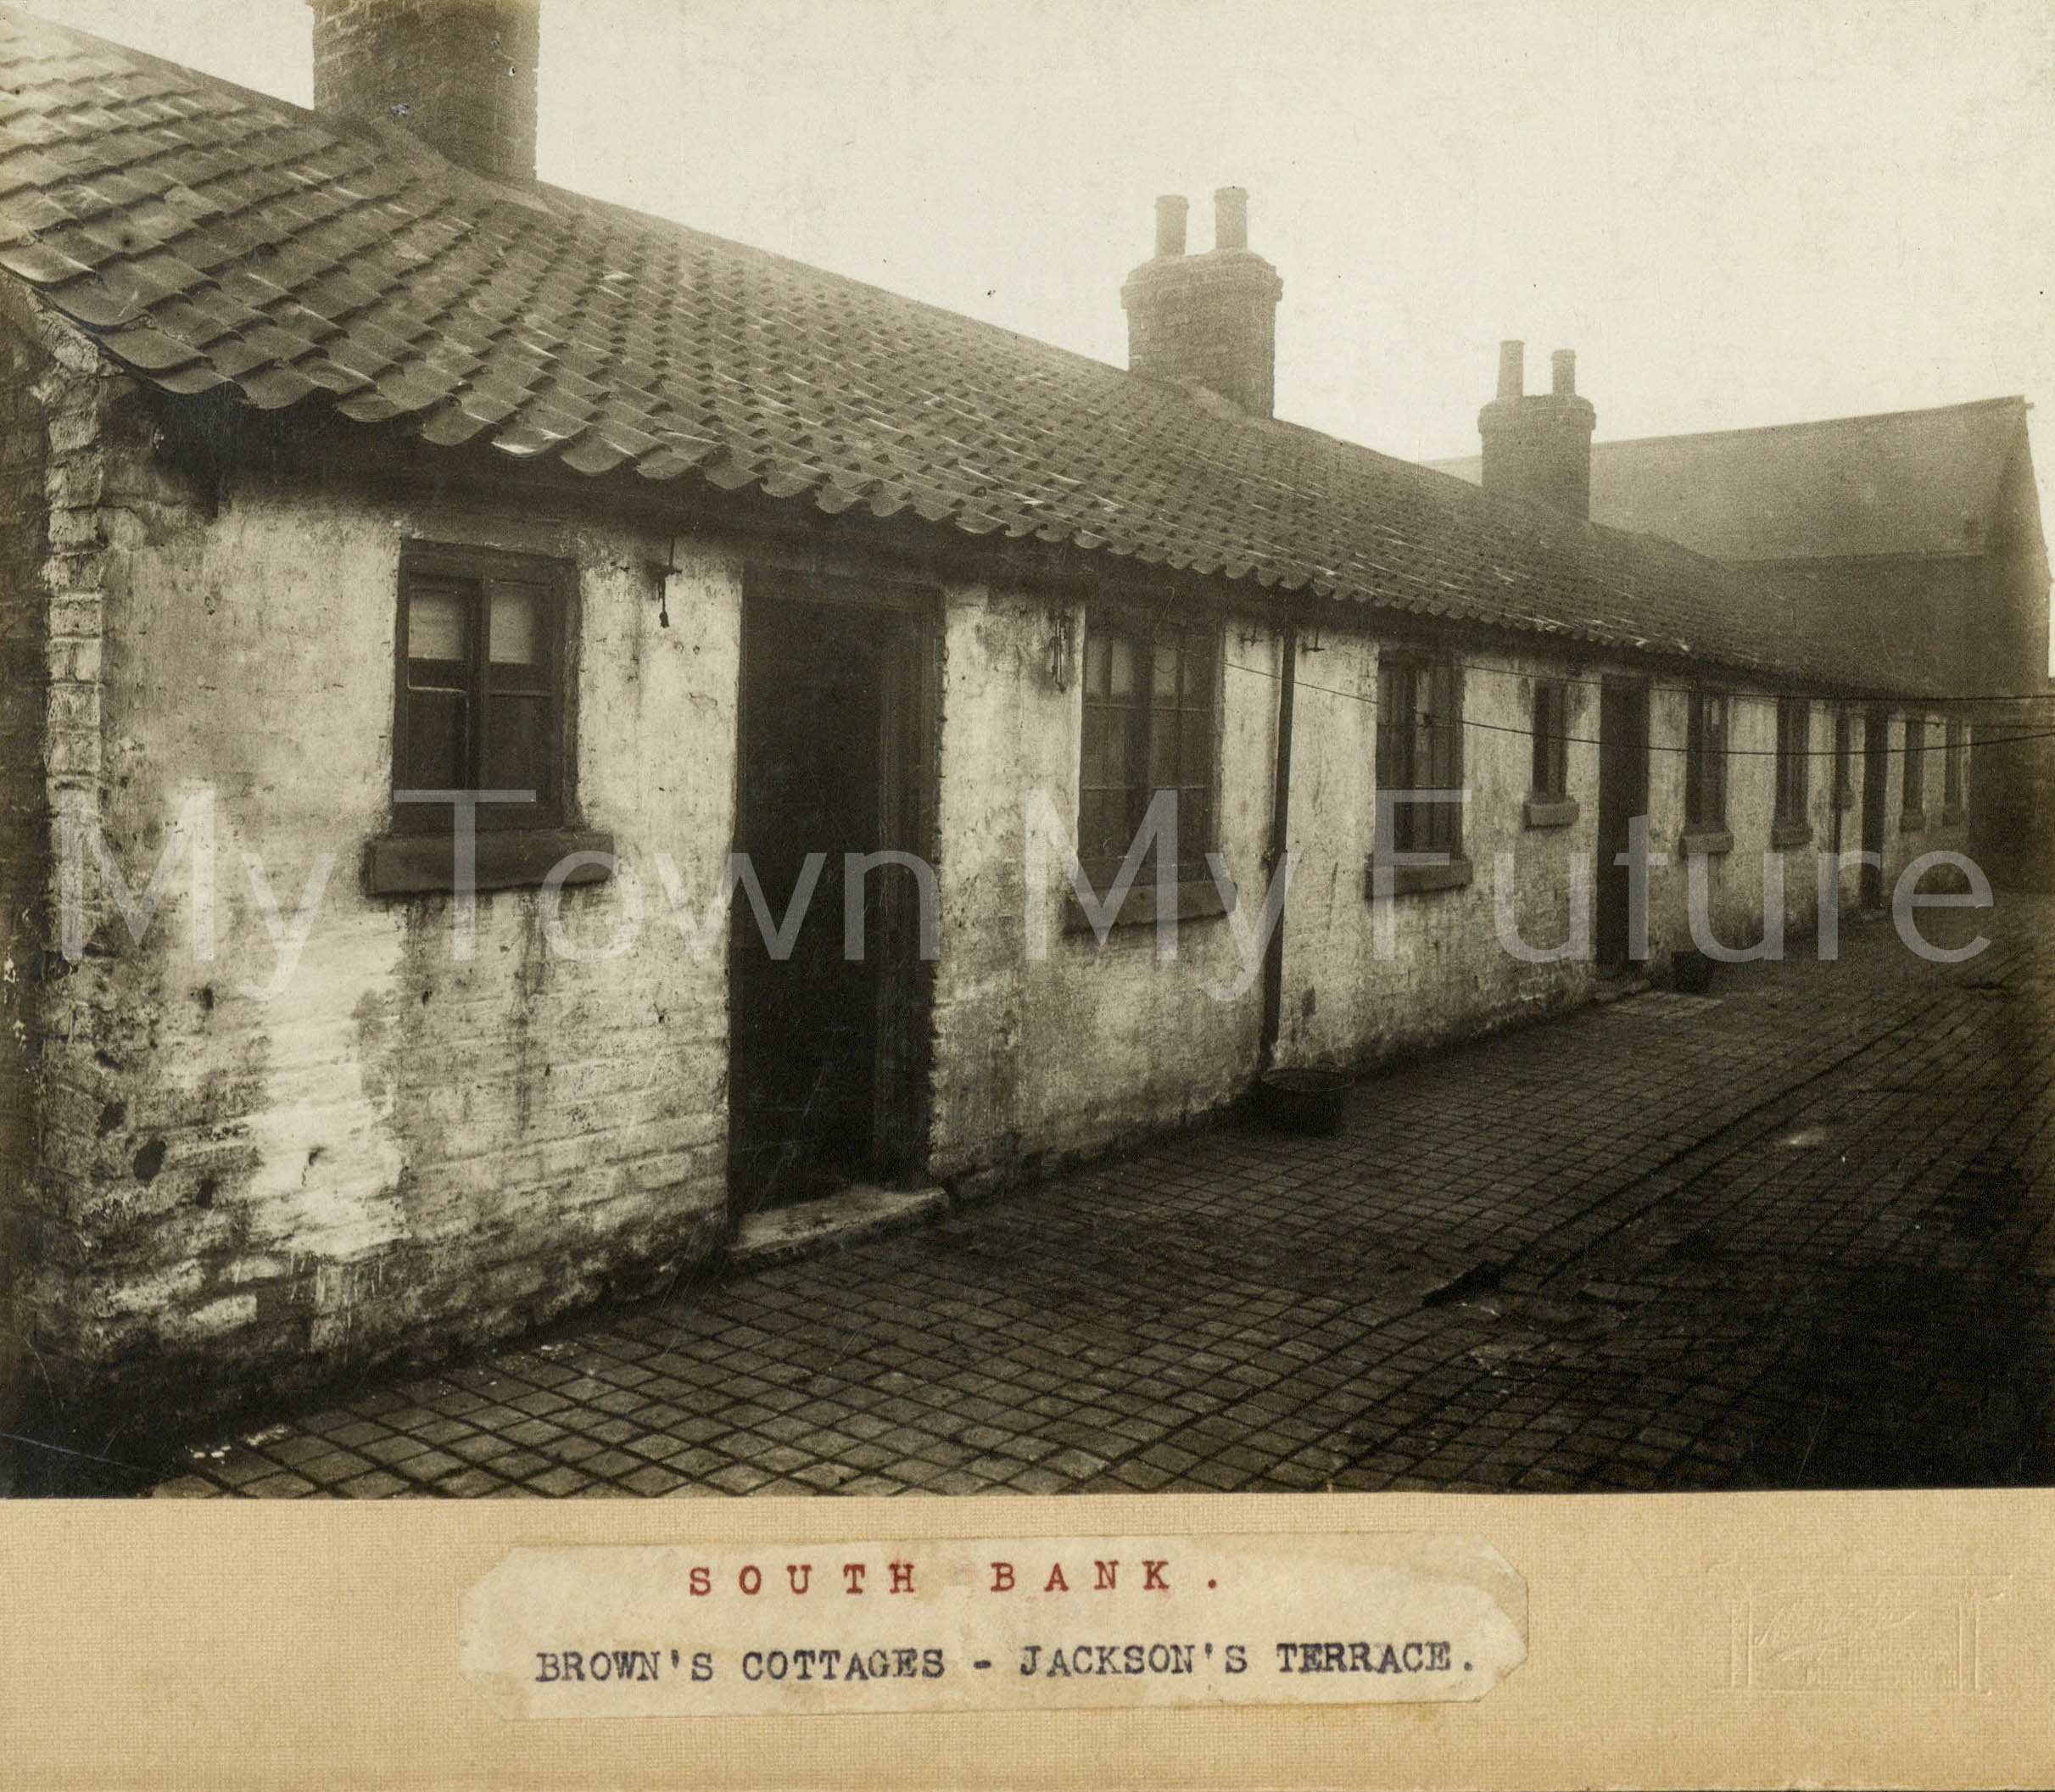 Brown's Cottages Jackson's Terrace South Bank (undated)